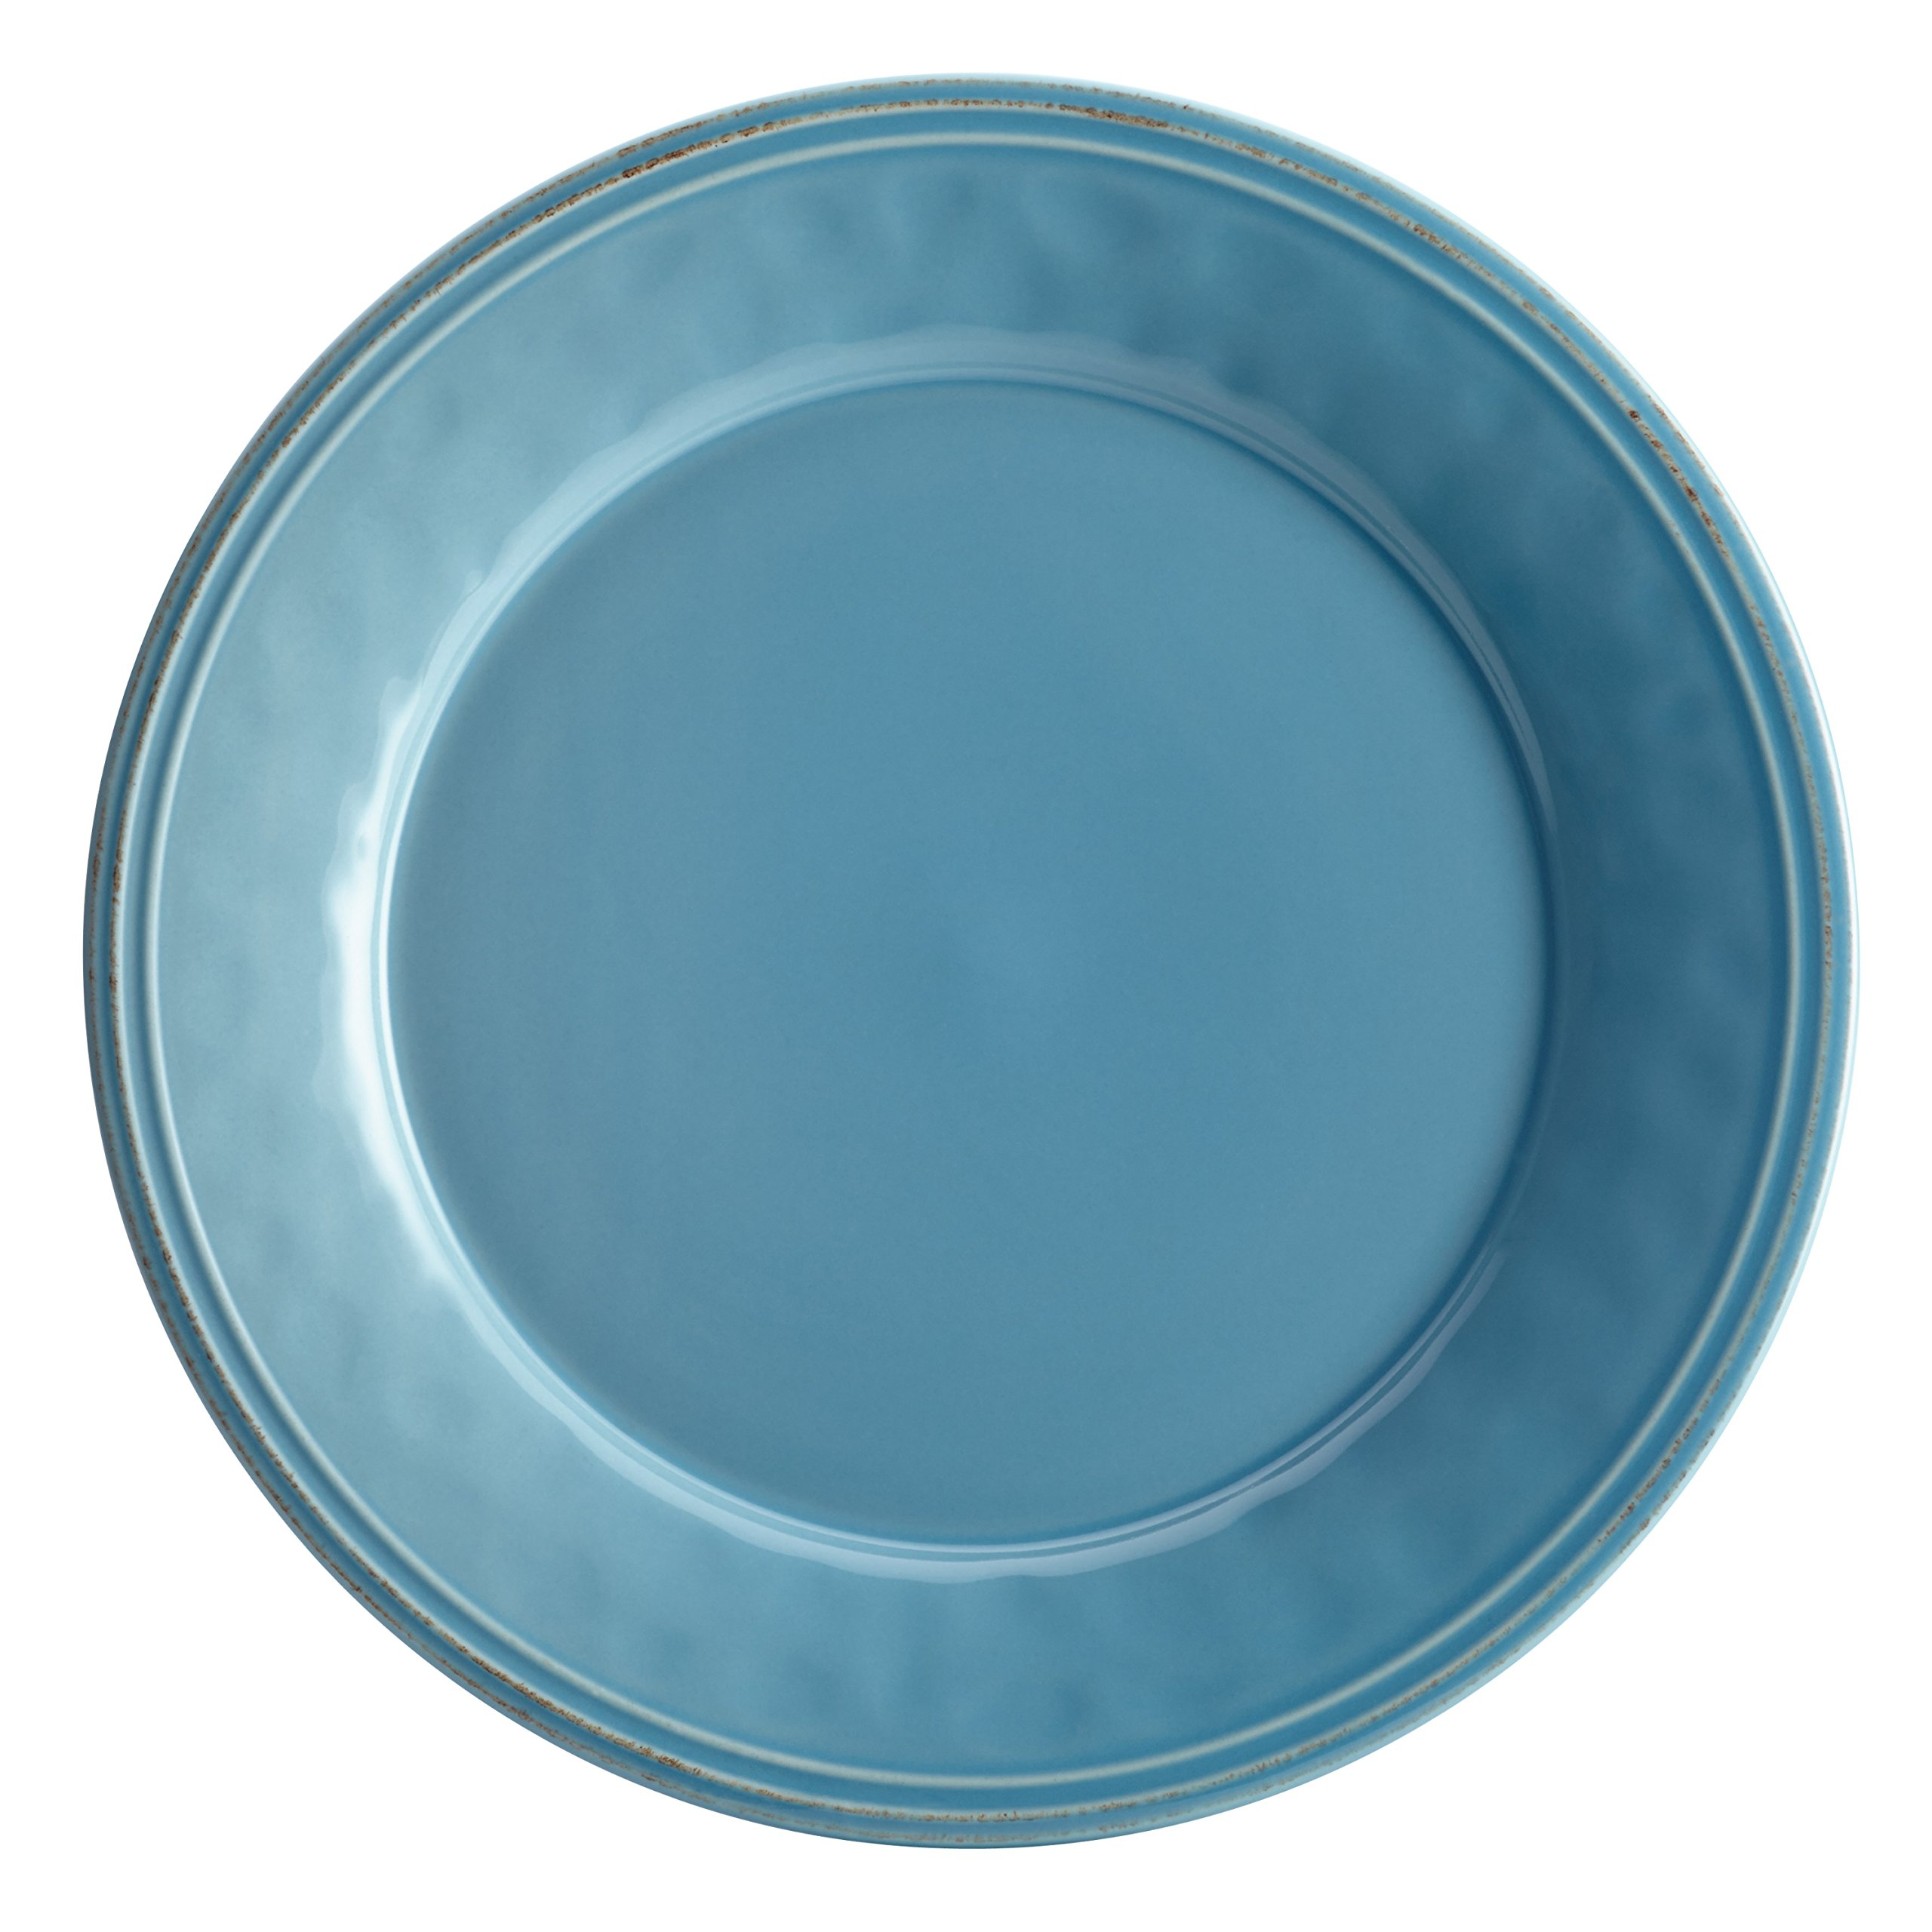 Rachael Ray Cucina Dinnerware 16-Piece Stoneware Dinnerware Set, Agave Blue by Rachael Ray (Image #8)